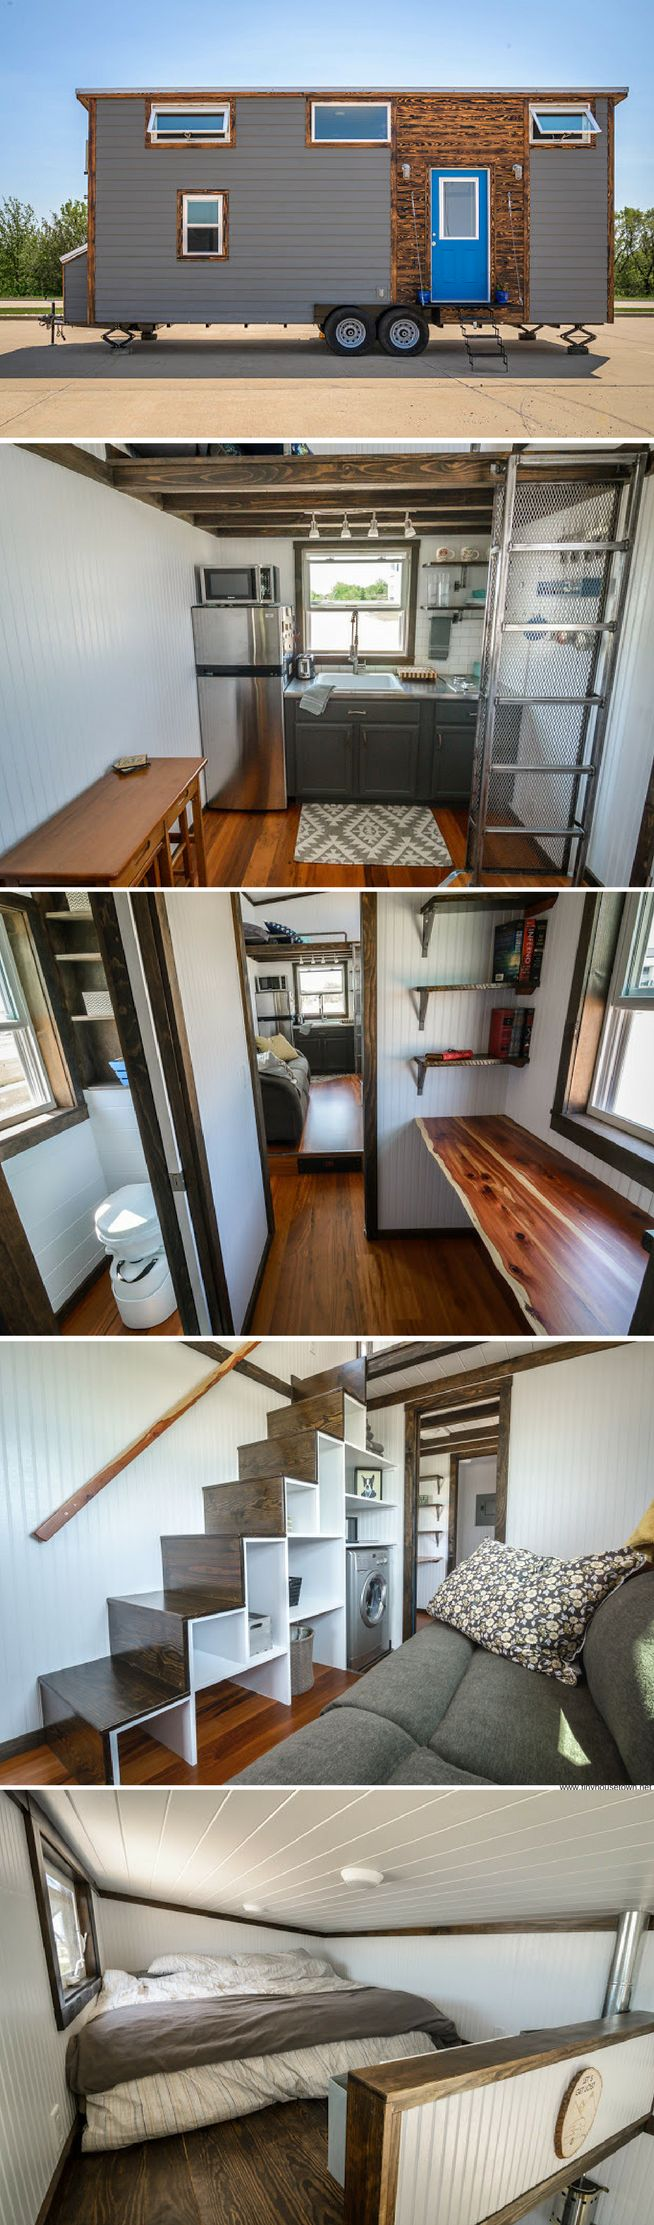 The Triton from Wind River Tiny Homes (204 sq ft)